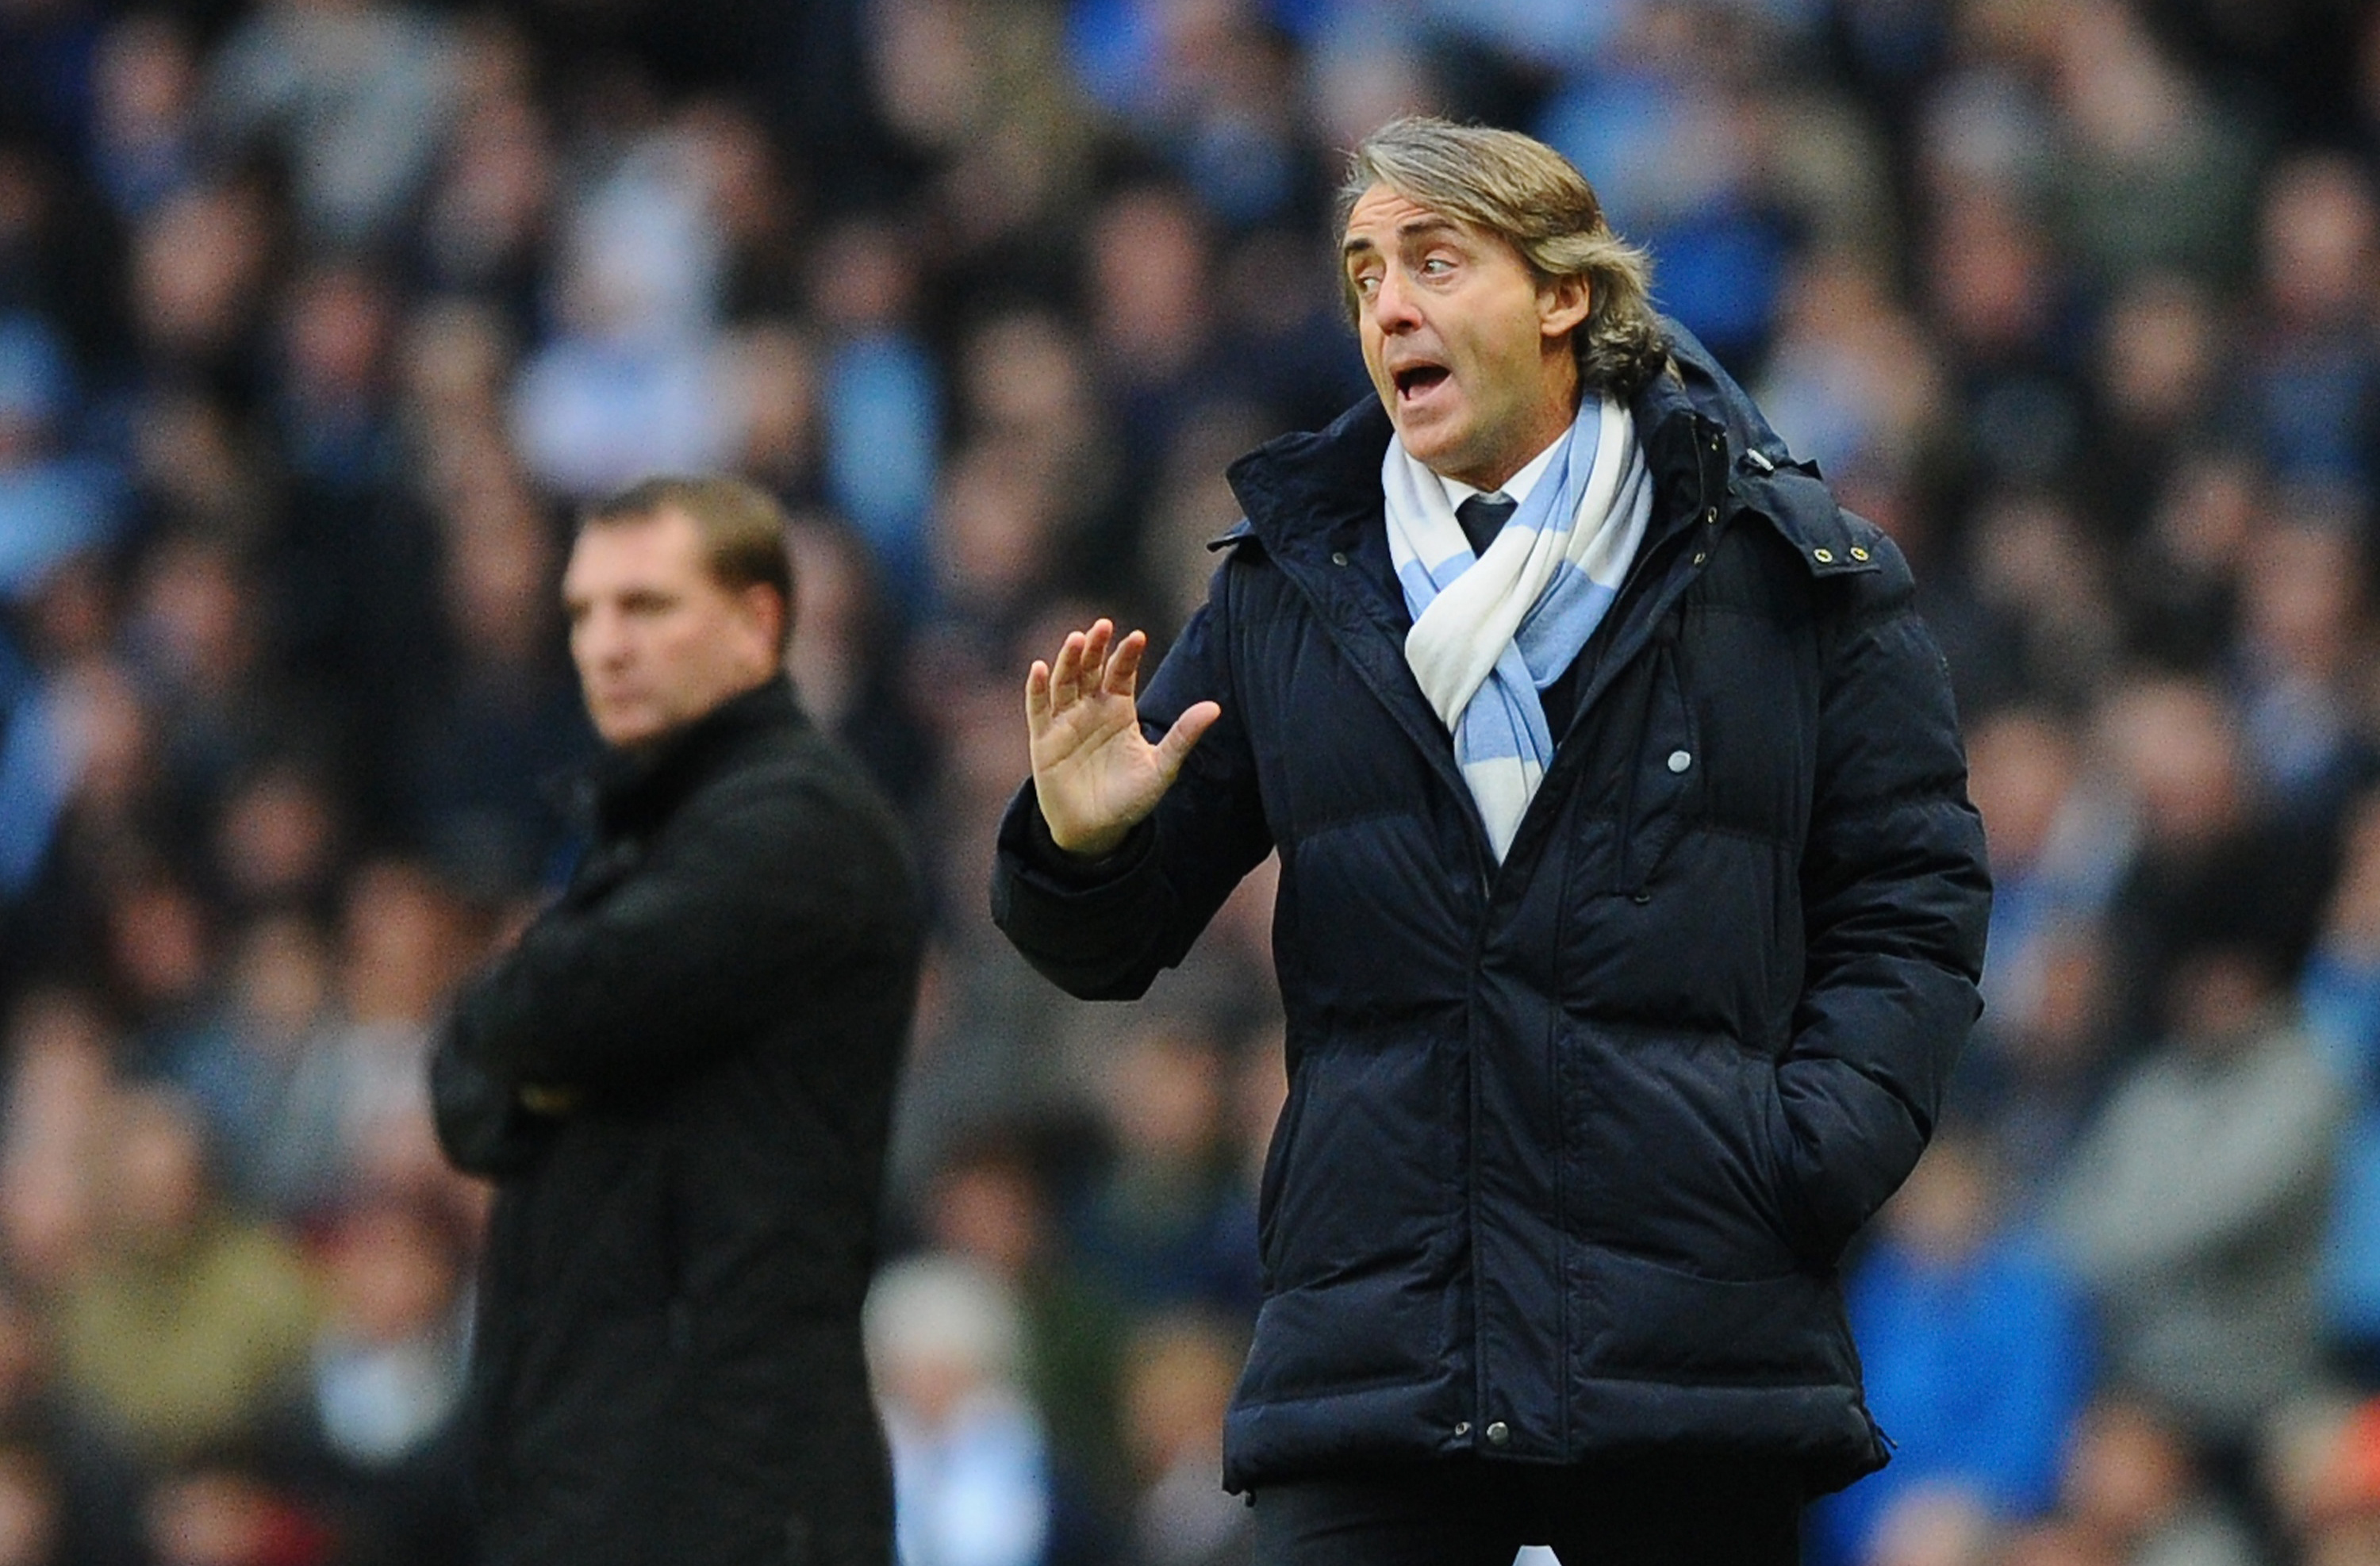 Roberto Mancini refuses to give up on Premier League title despite Liverpool draw